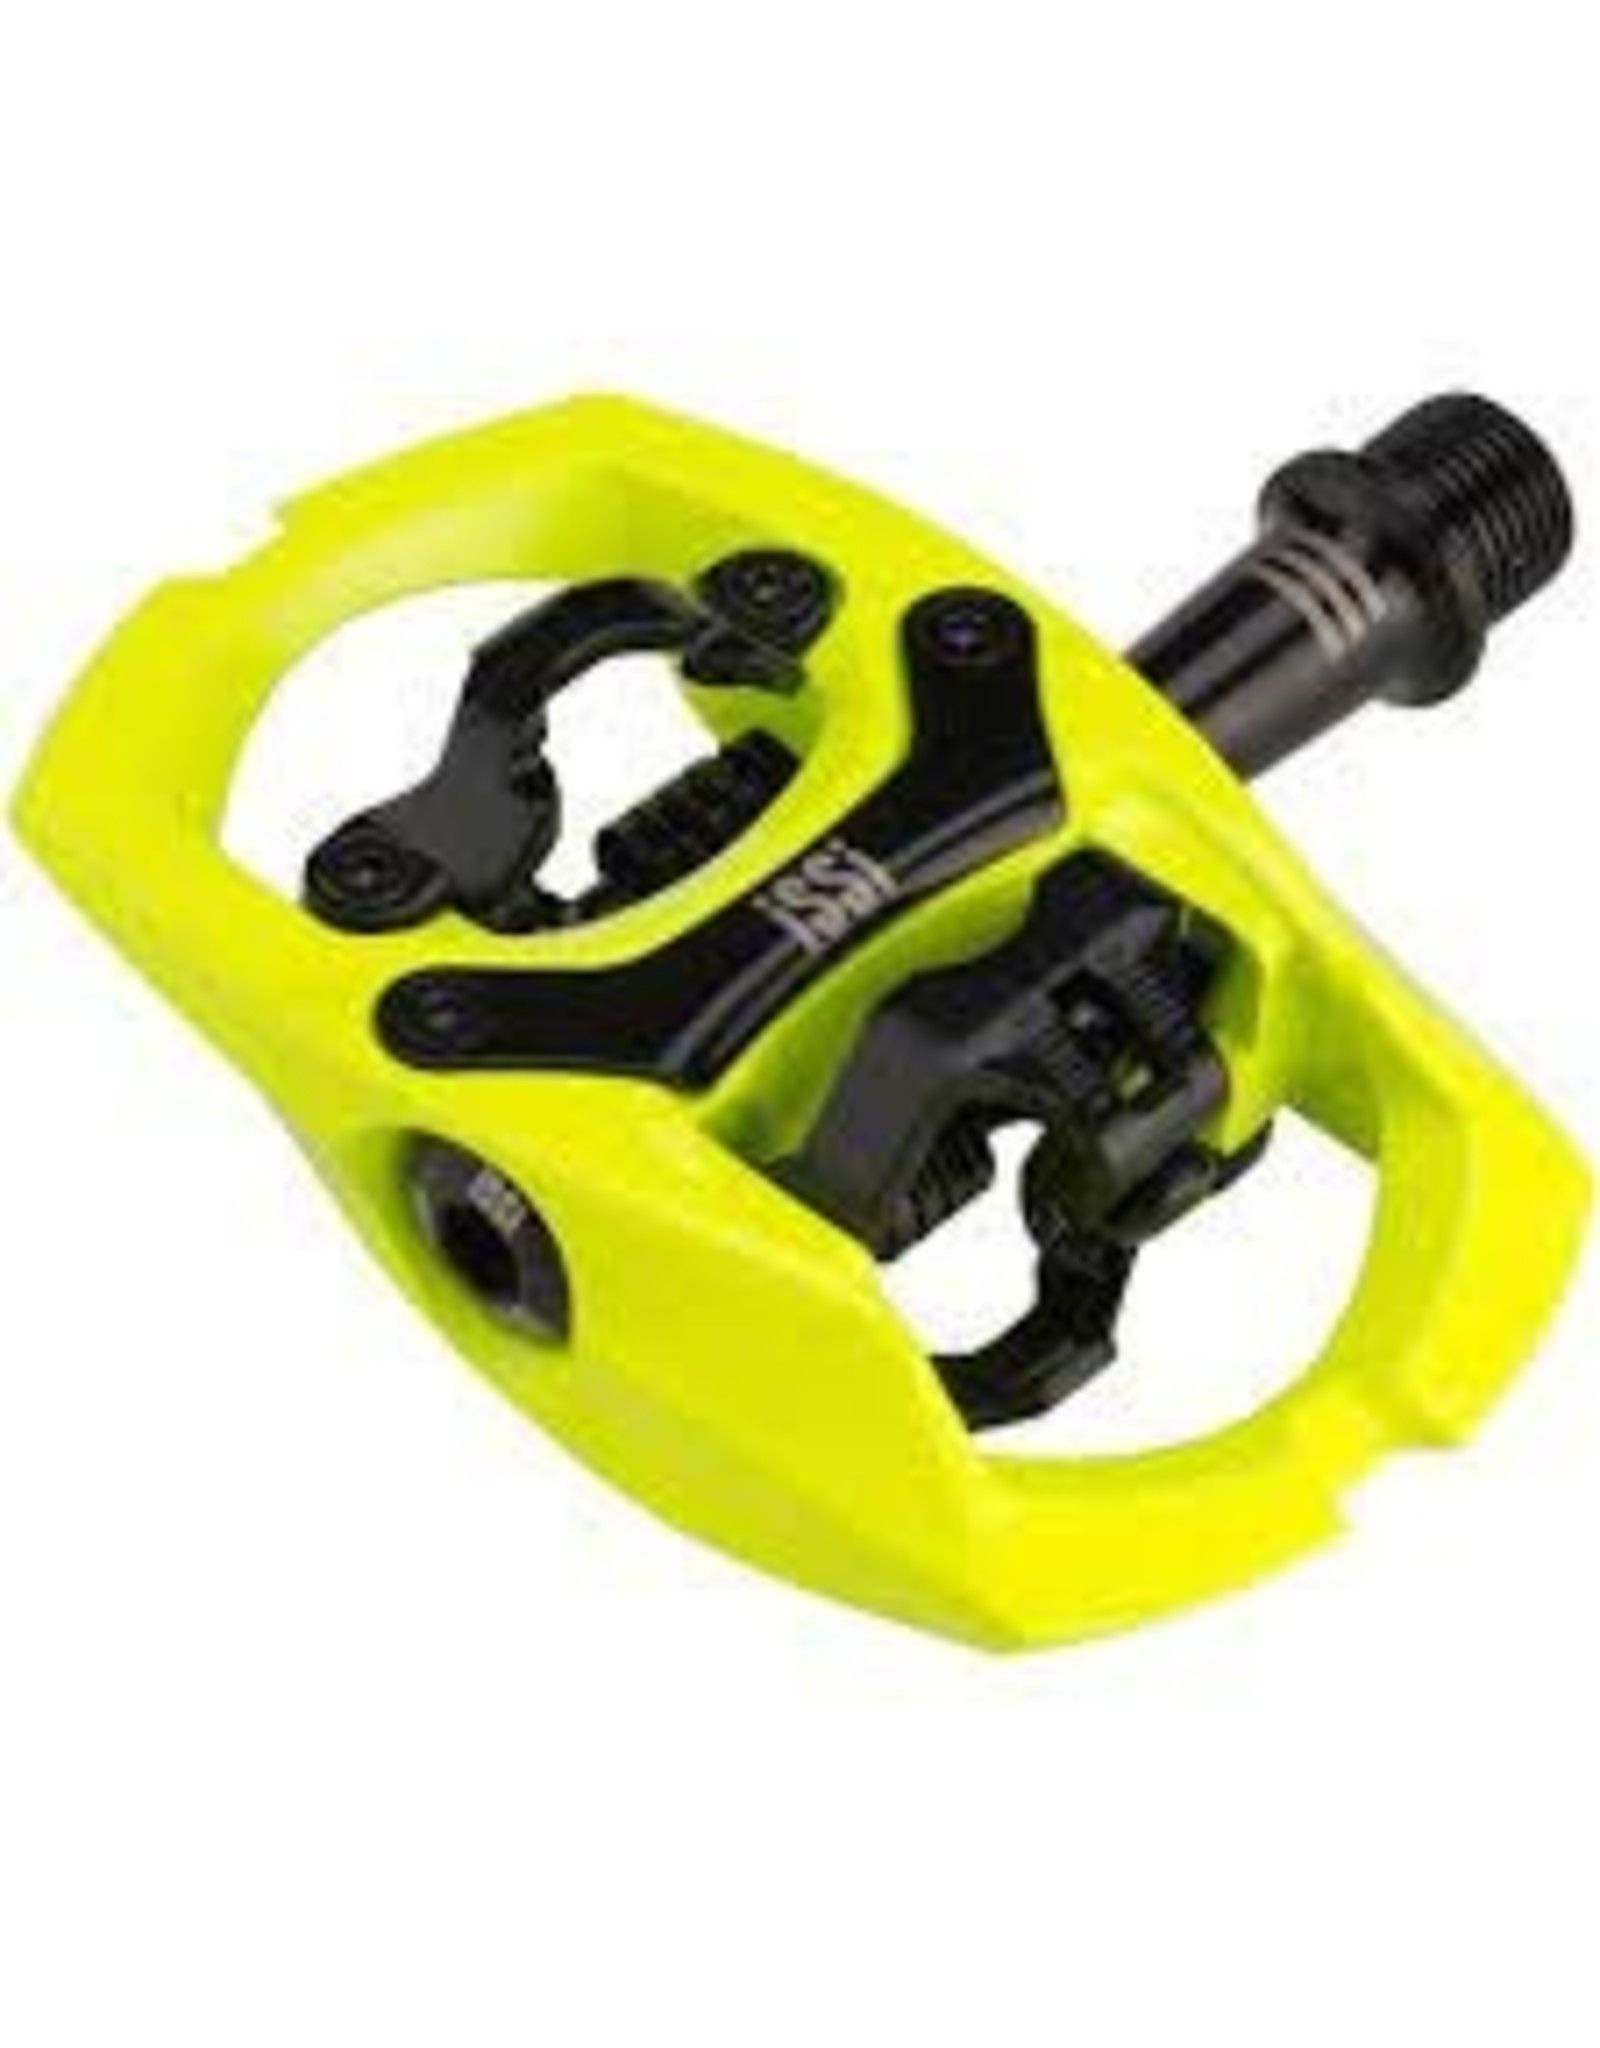 """iSSi iSSi Flash III Pedals - Dual Sided Clipless, Aluminum, 9/16"""", Yellow"""